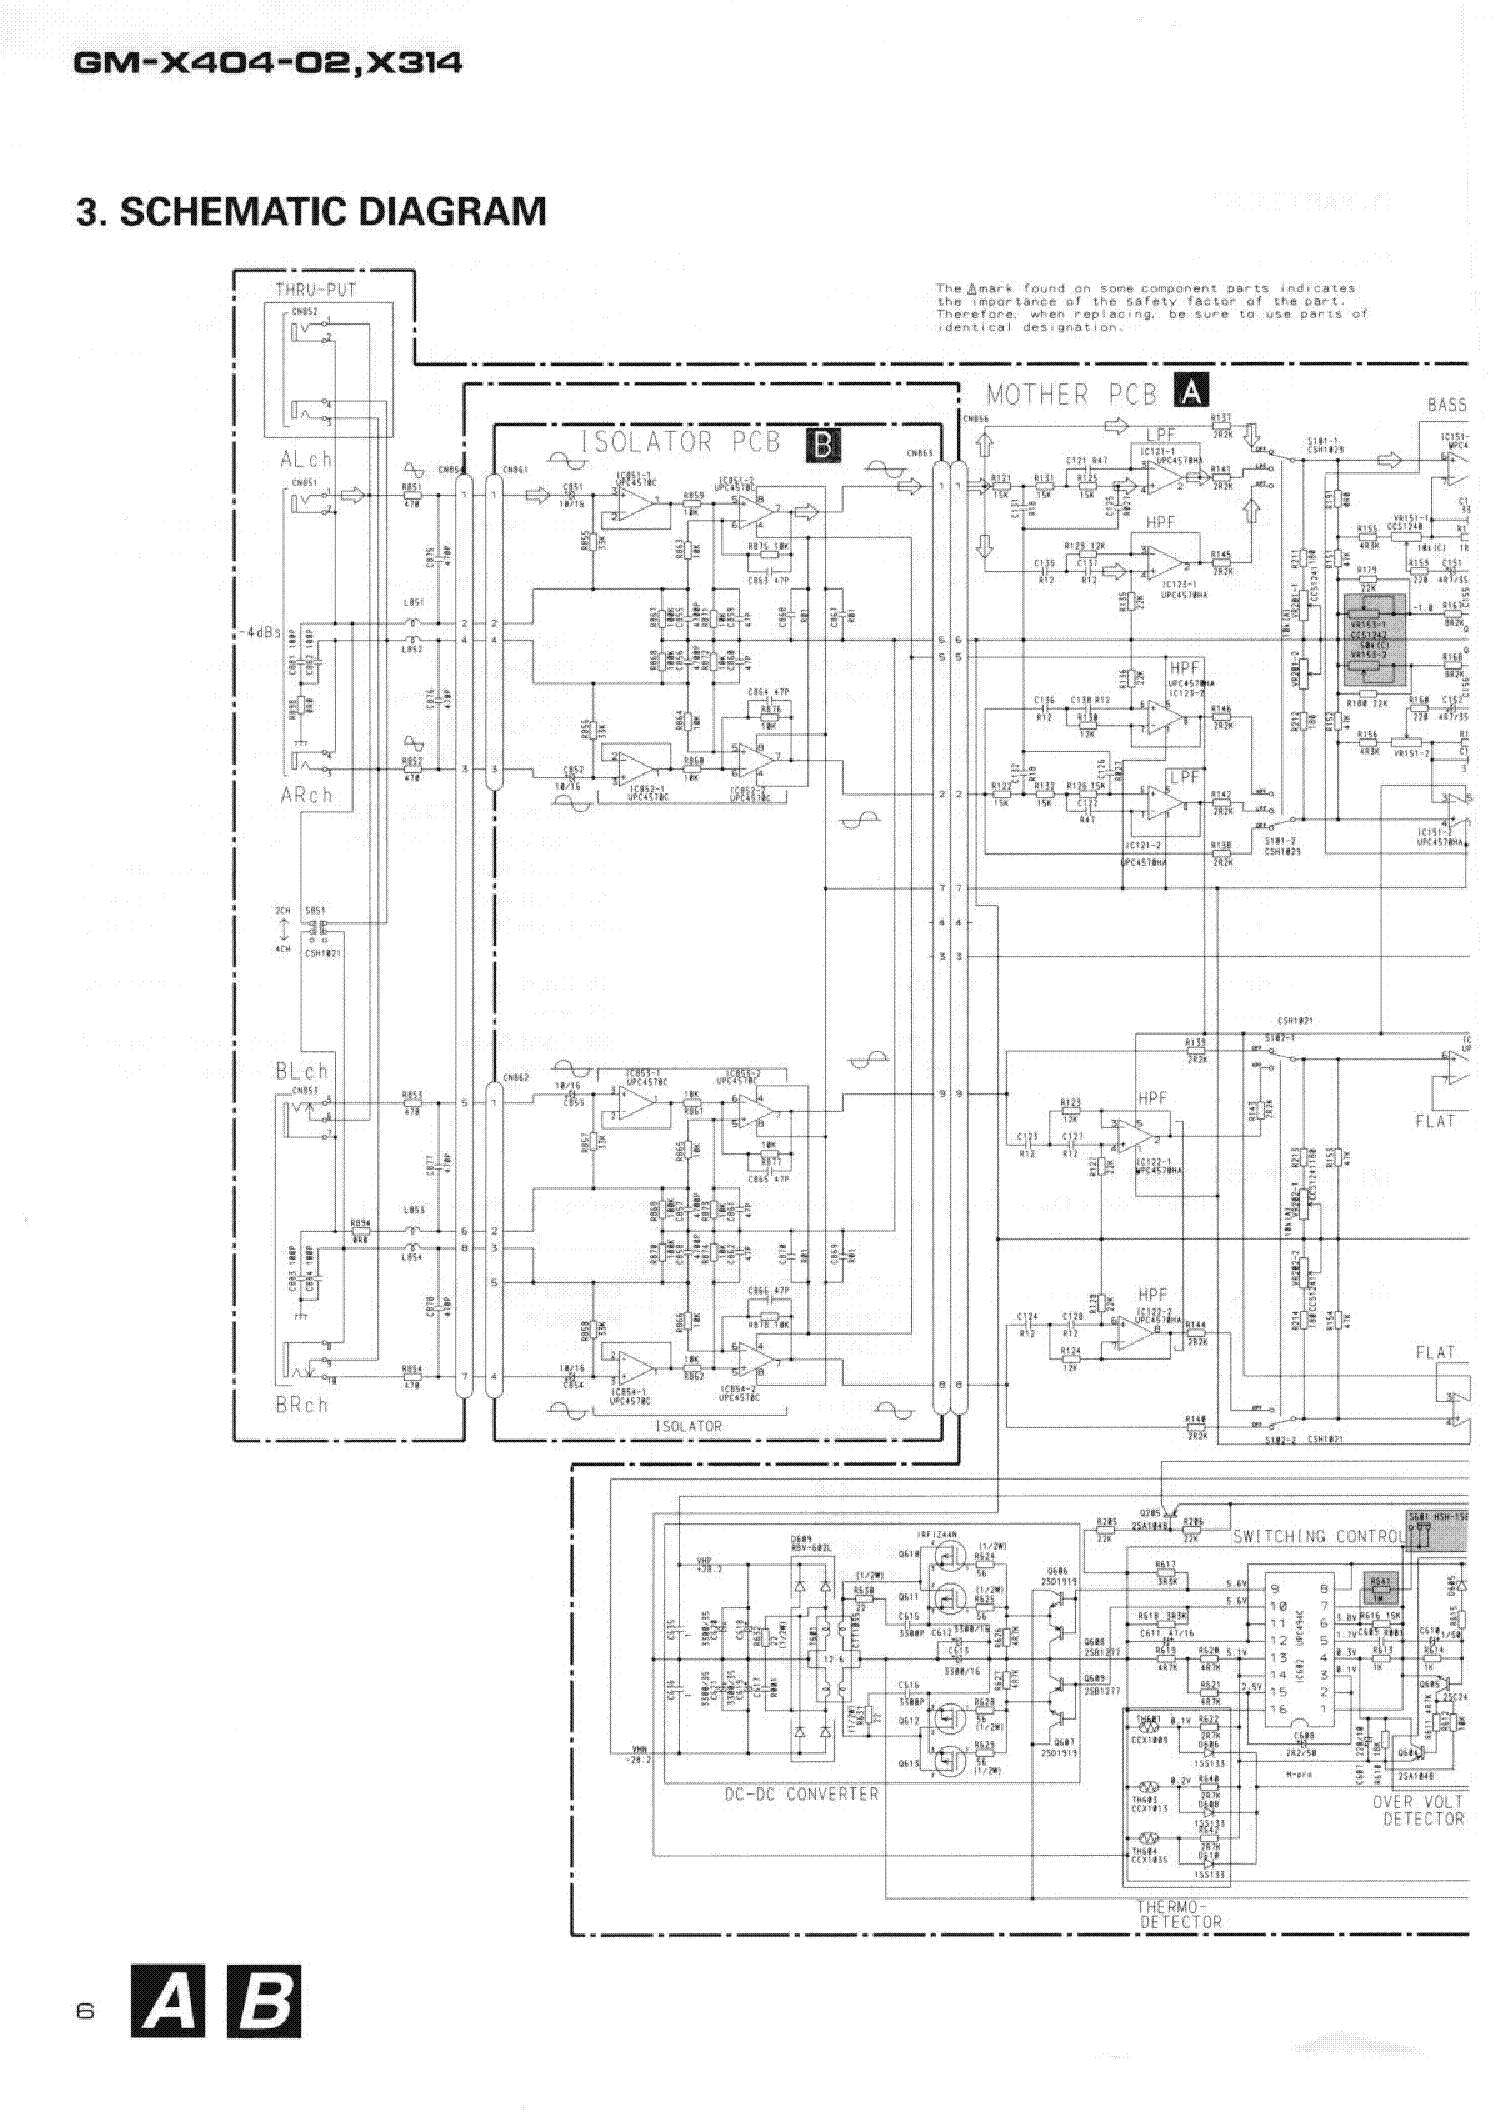 pioneer gm-x314 x404-02 sm service manual (2nd page)